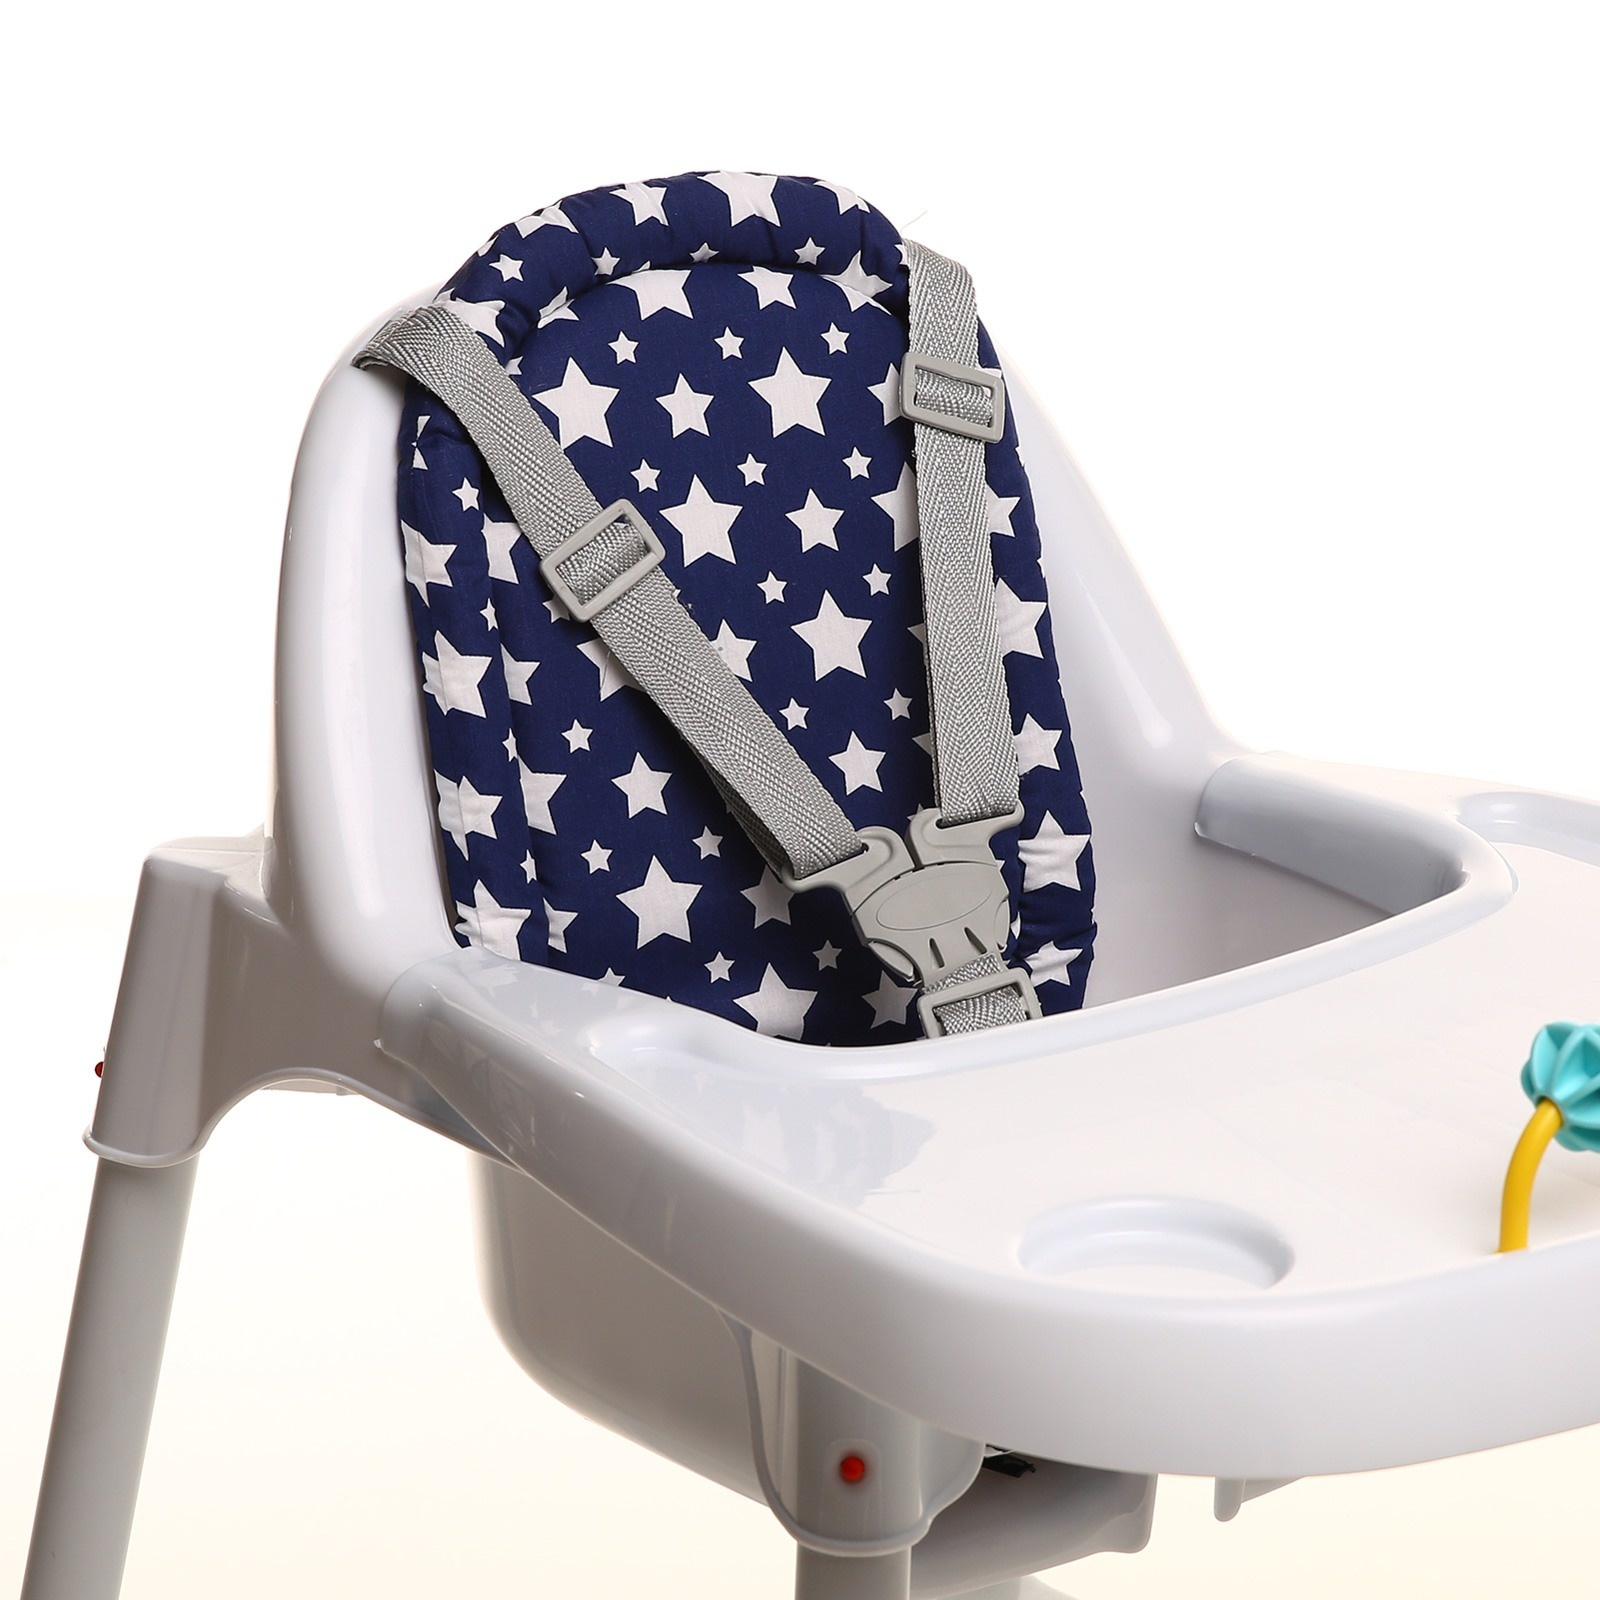 Ebebek Babyjem Baby High Chair Cotton Cushion Star Patterned